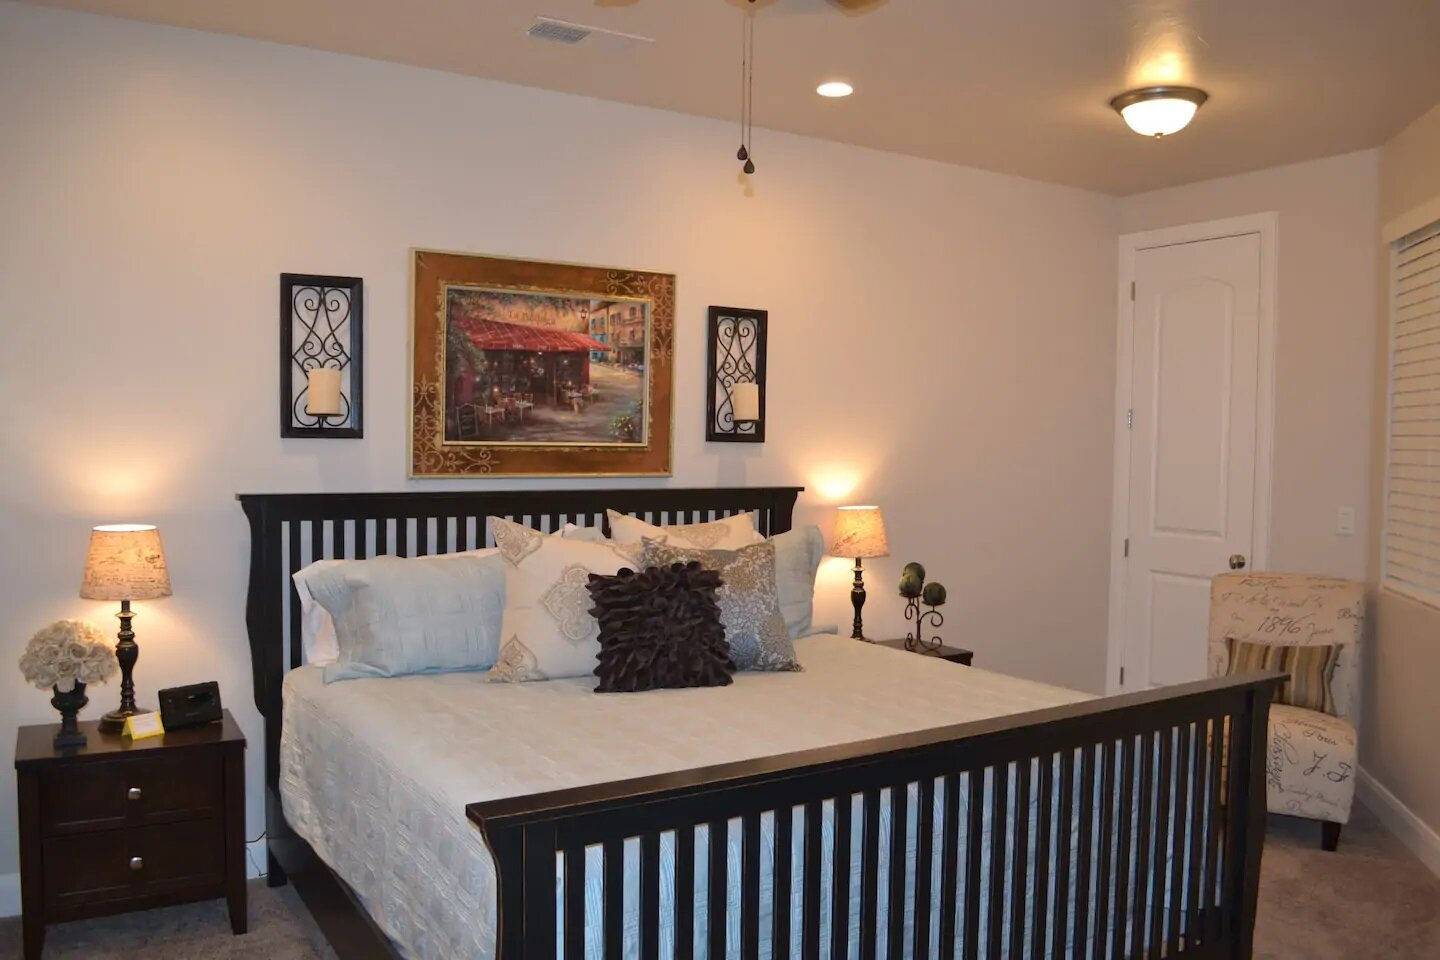 Coral Ridge Oasis    St. George - Here we Come! 2 pools & 2 spas 11 Guests with 4 bedrooms and 2.5 baths 8 Beds